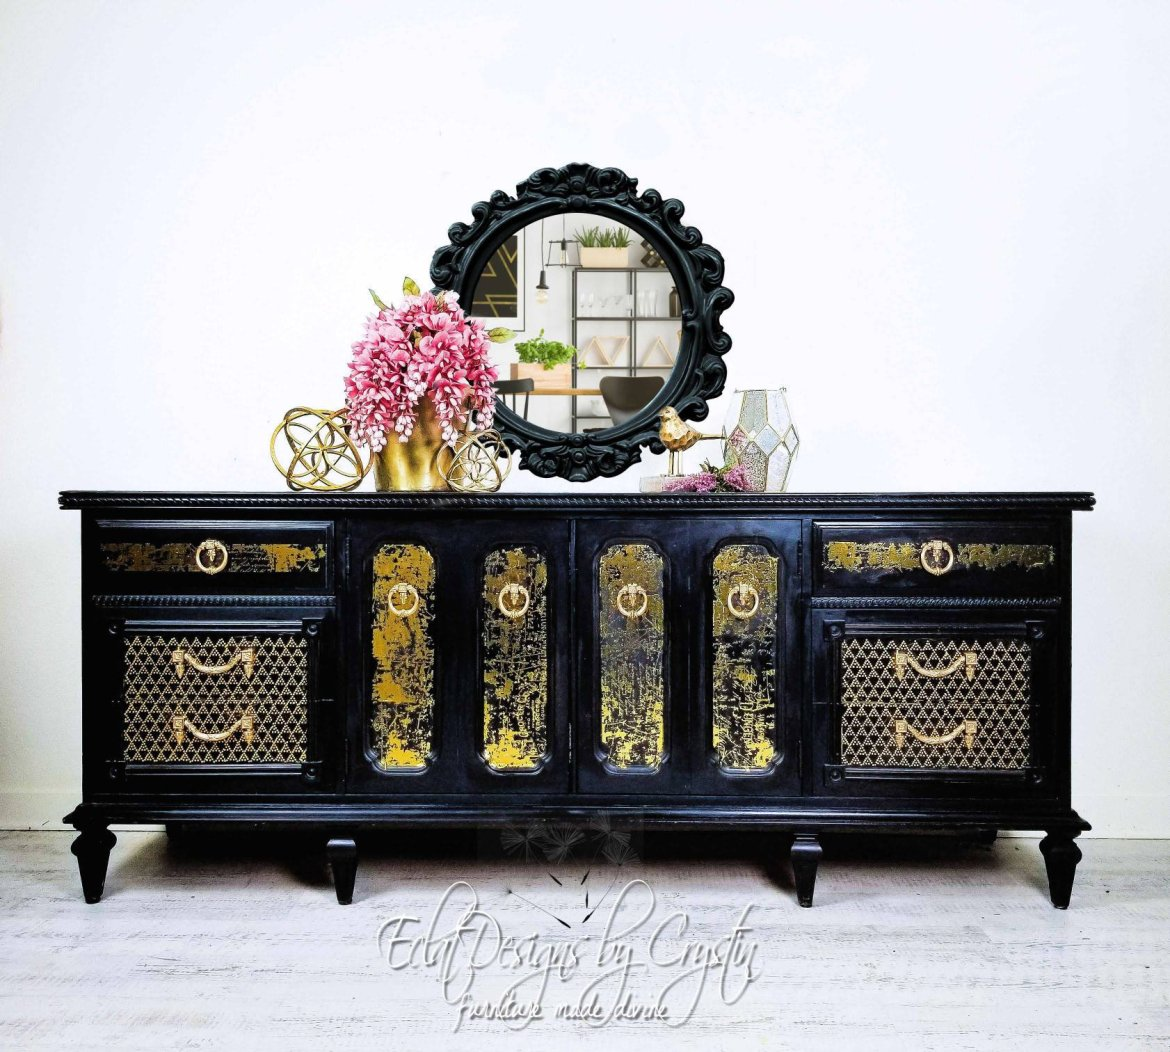 black-and-gold-dresser-credenza-media-console-sideboard-buffet-eclatdesignsbycrystin